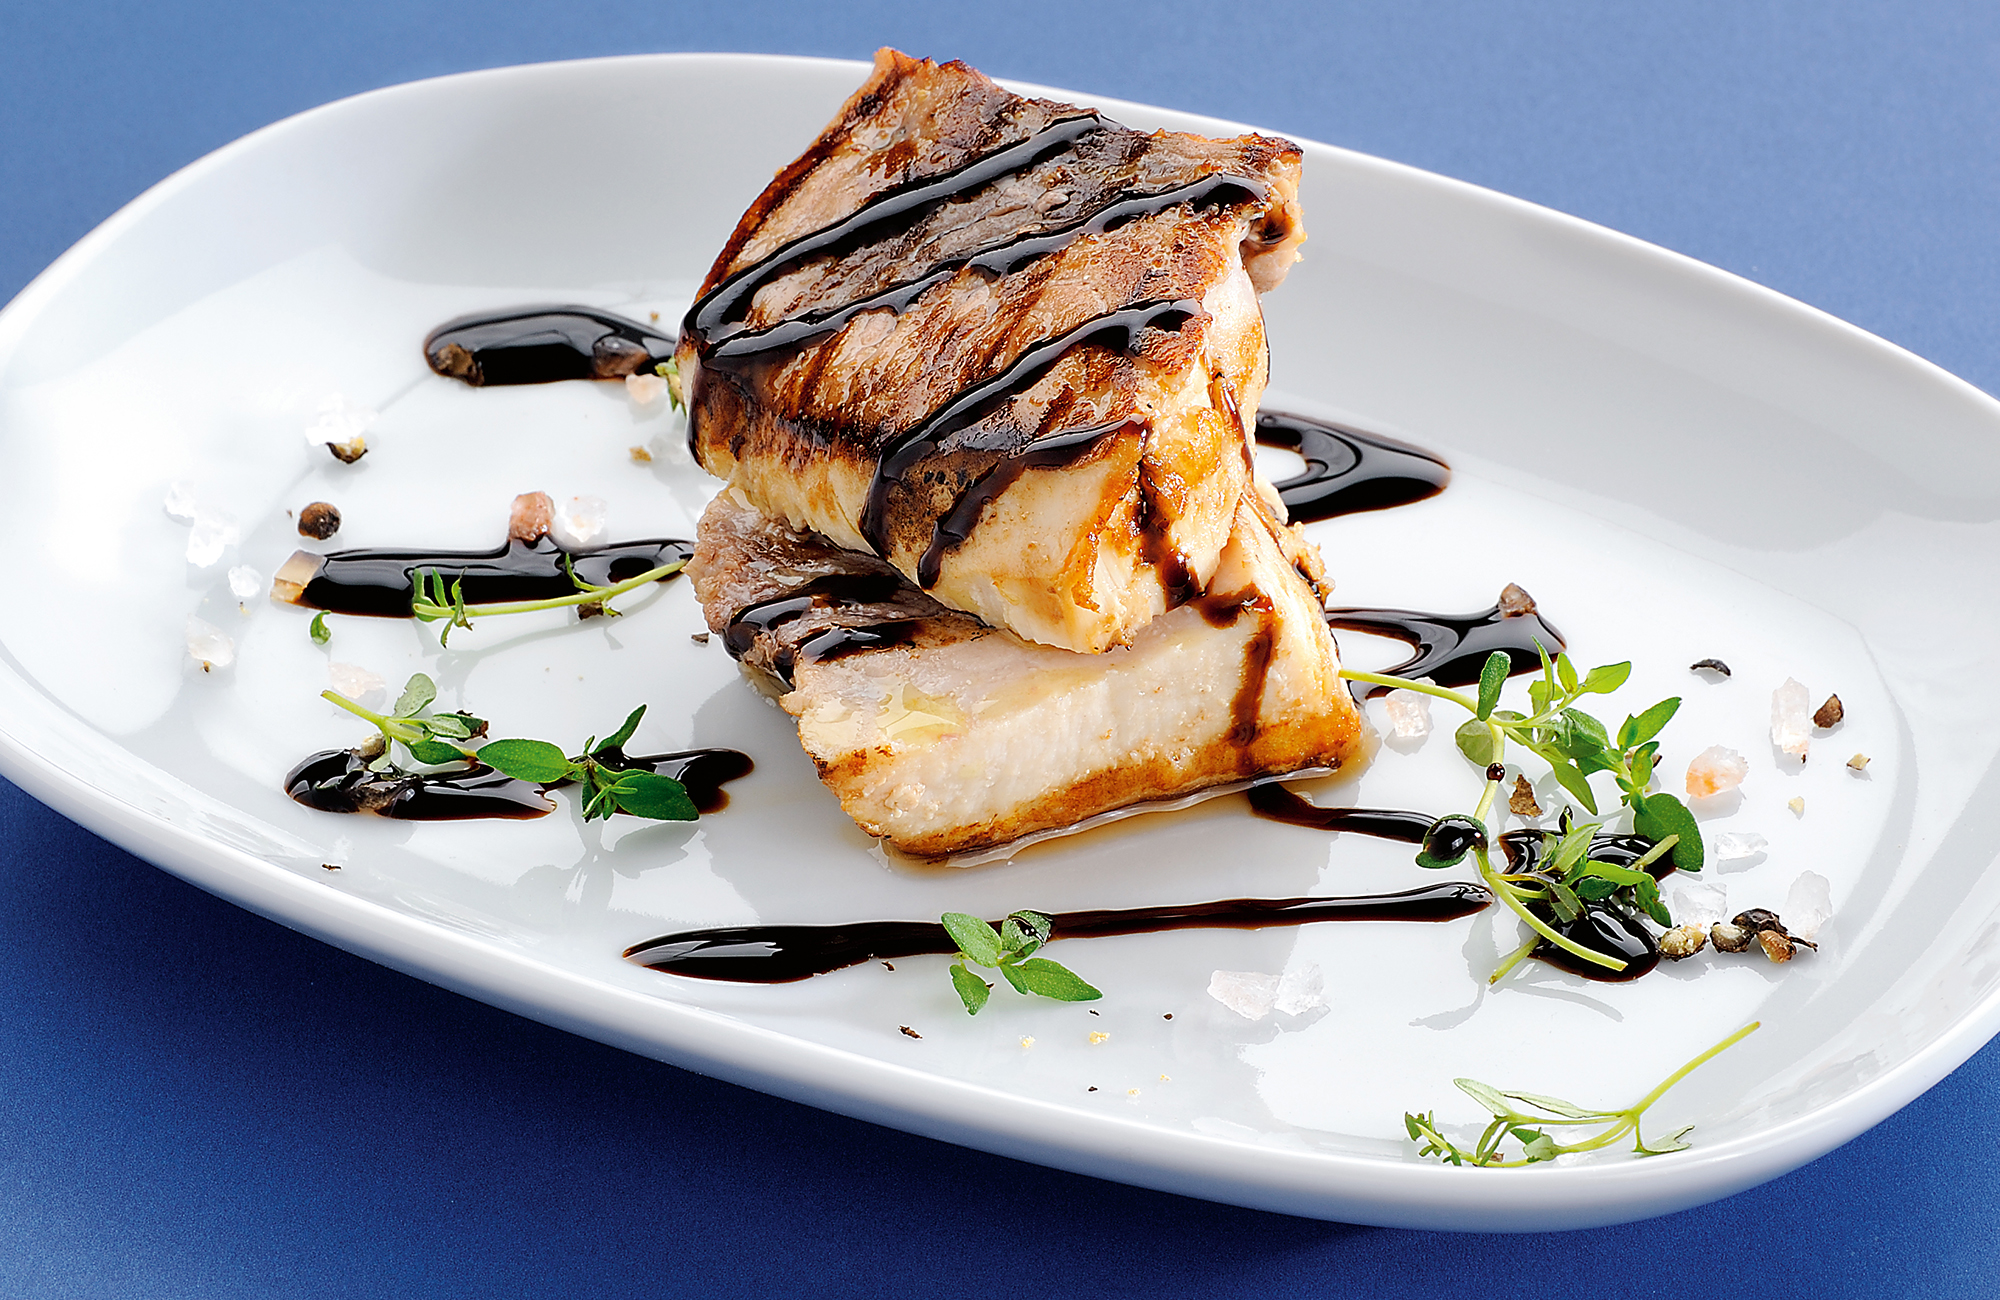 Grilled swordfish with fresh thyme and Balsamic Vinegar of Modena P.G.I. Glaze - Ponti